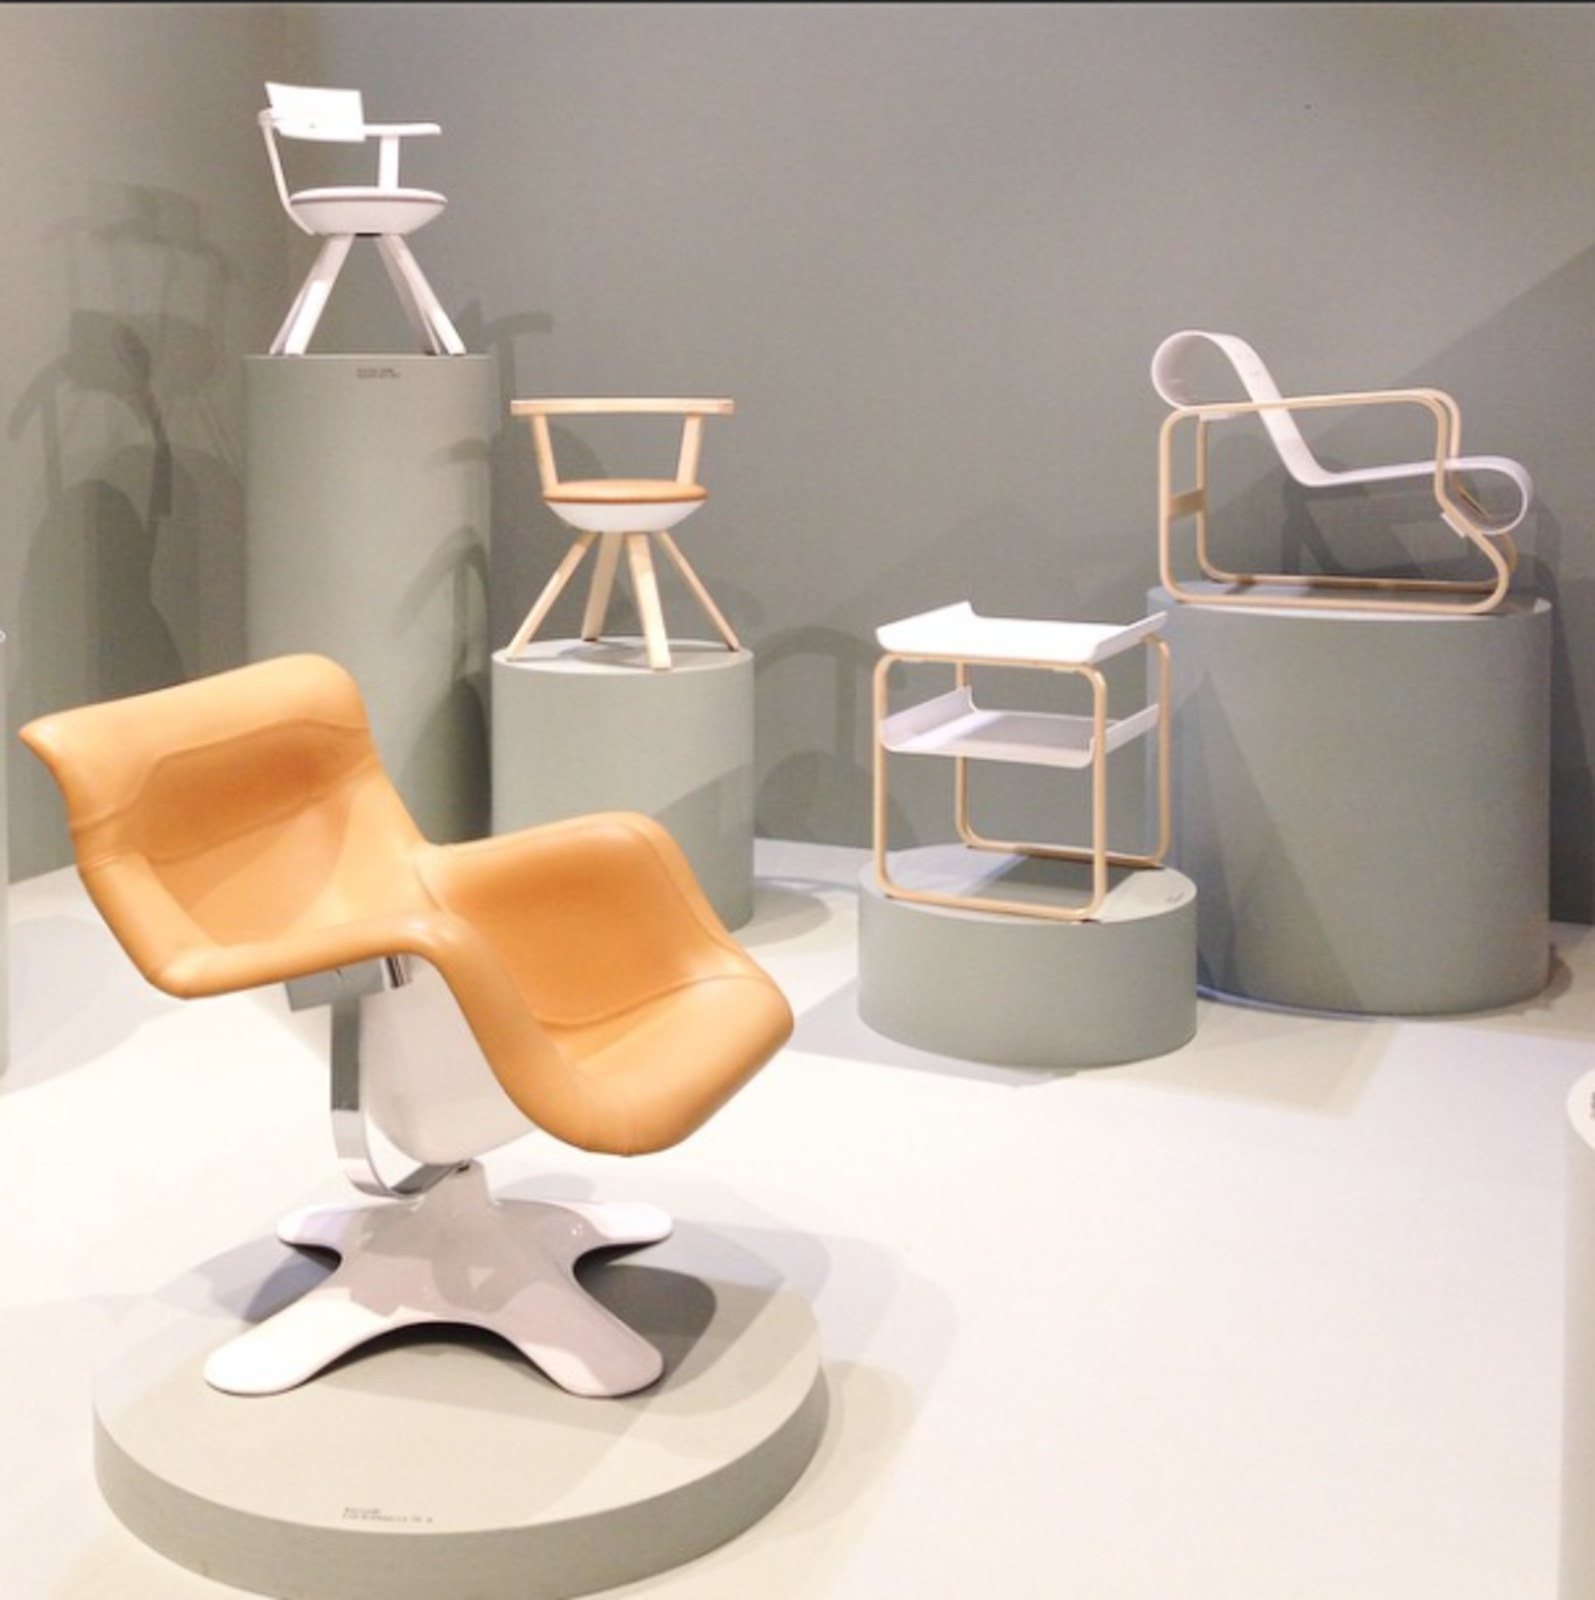 Aalto, Grcic, and Kukkapuro strikingly displayed at @ArtekGlobal.  Editors' Picks from Salone del Mobile 2015: Day One by Dwell